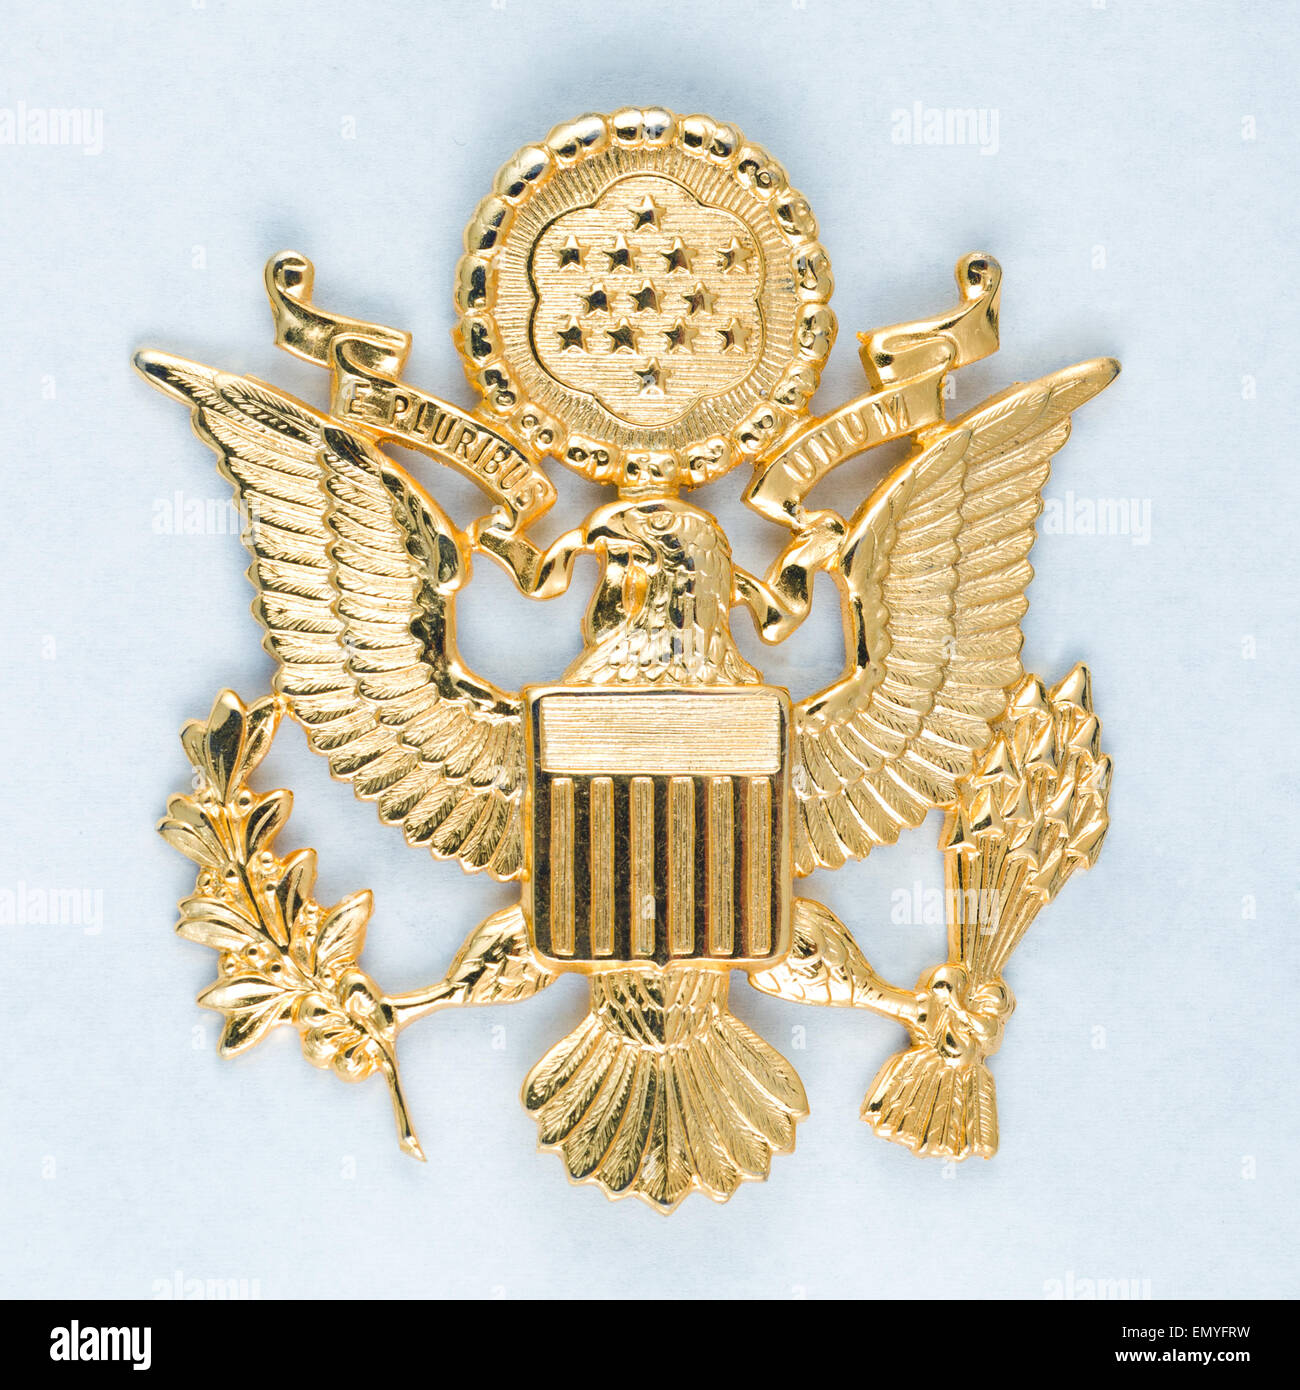 USA - 2013 - The great seal of the United States of America, Gol - Stock Image